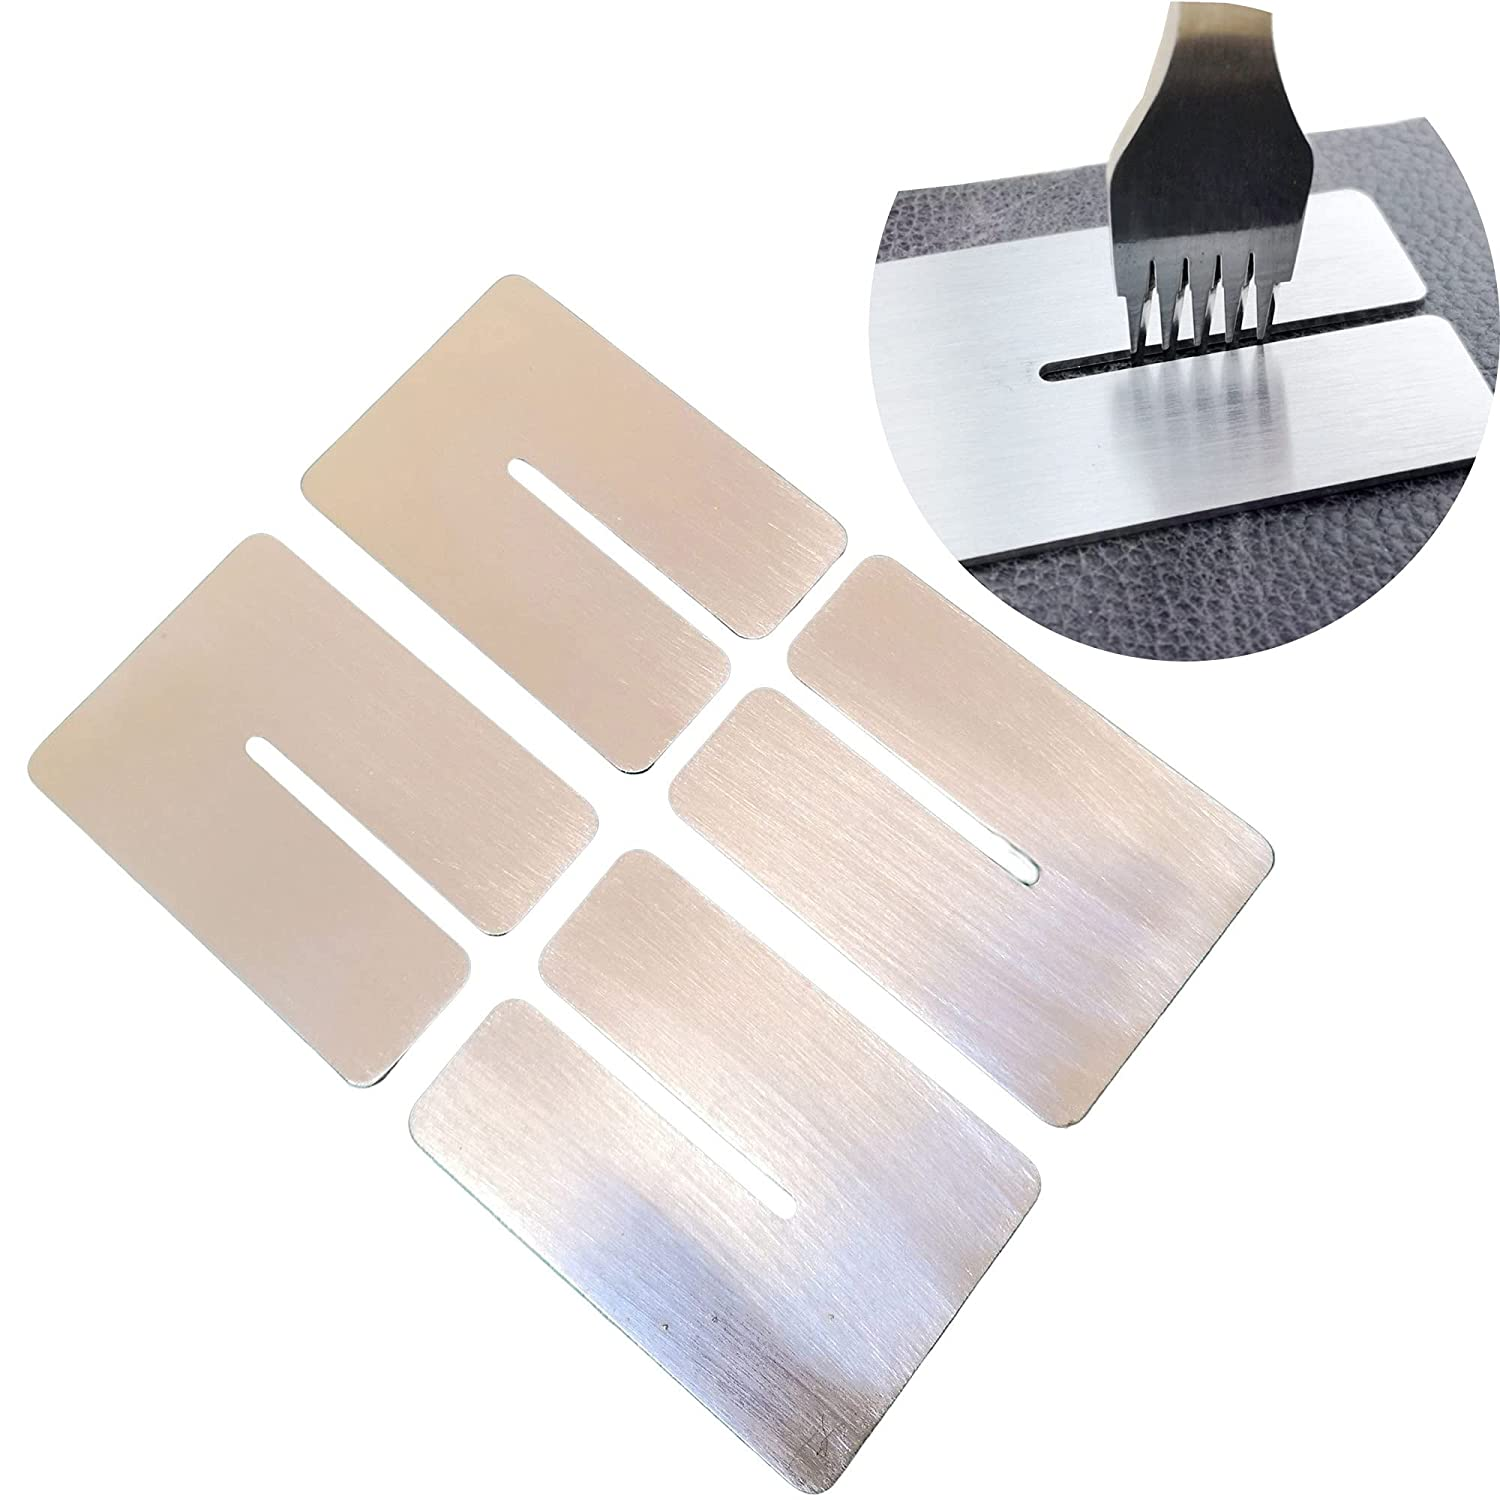 Prong Leather New products, world's highest quality popular! Chisel Mate Hole Stitching Tulsa Mall To Lacing Punch Punches